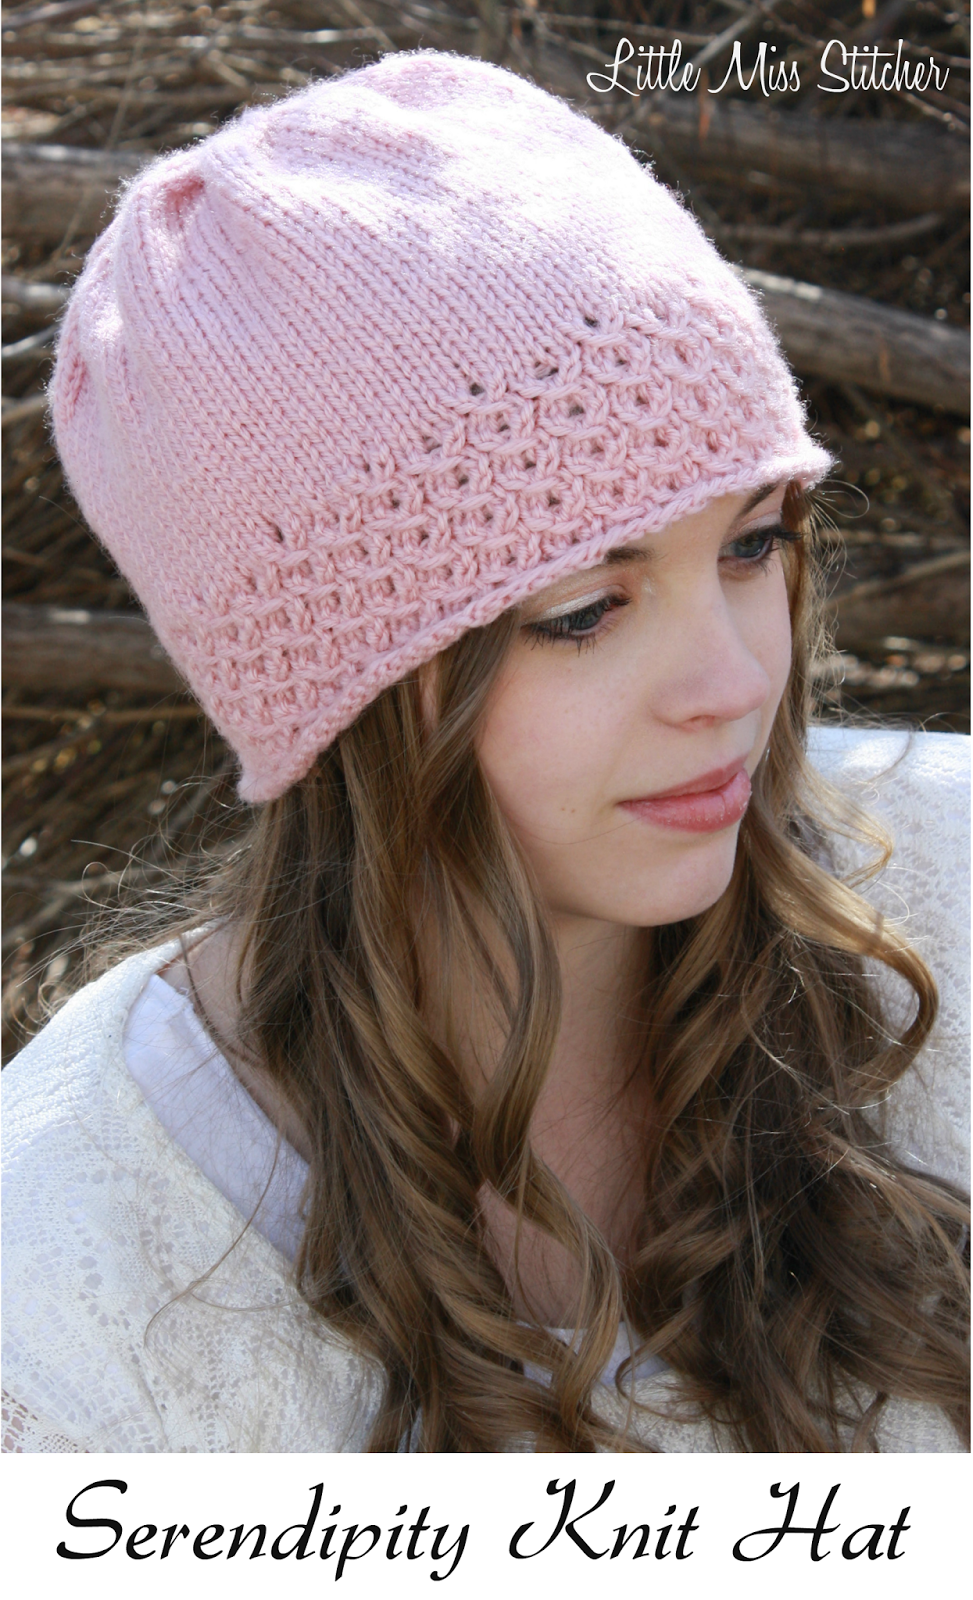 Check out what kerstenlind made using our vannas choice yarn a little miss stitcher serendipity knit hat free pattern bankloansurffo Gallery